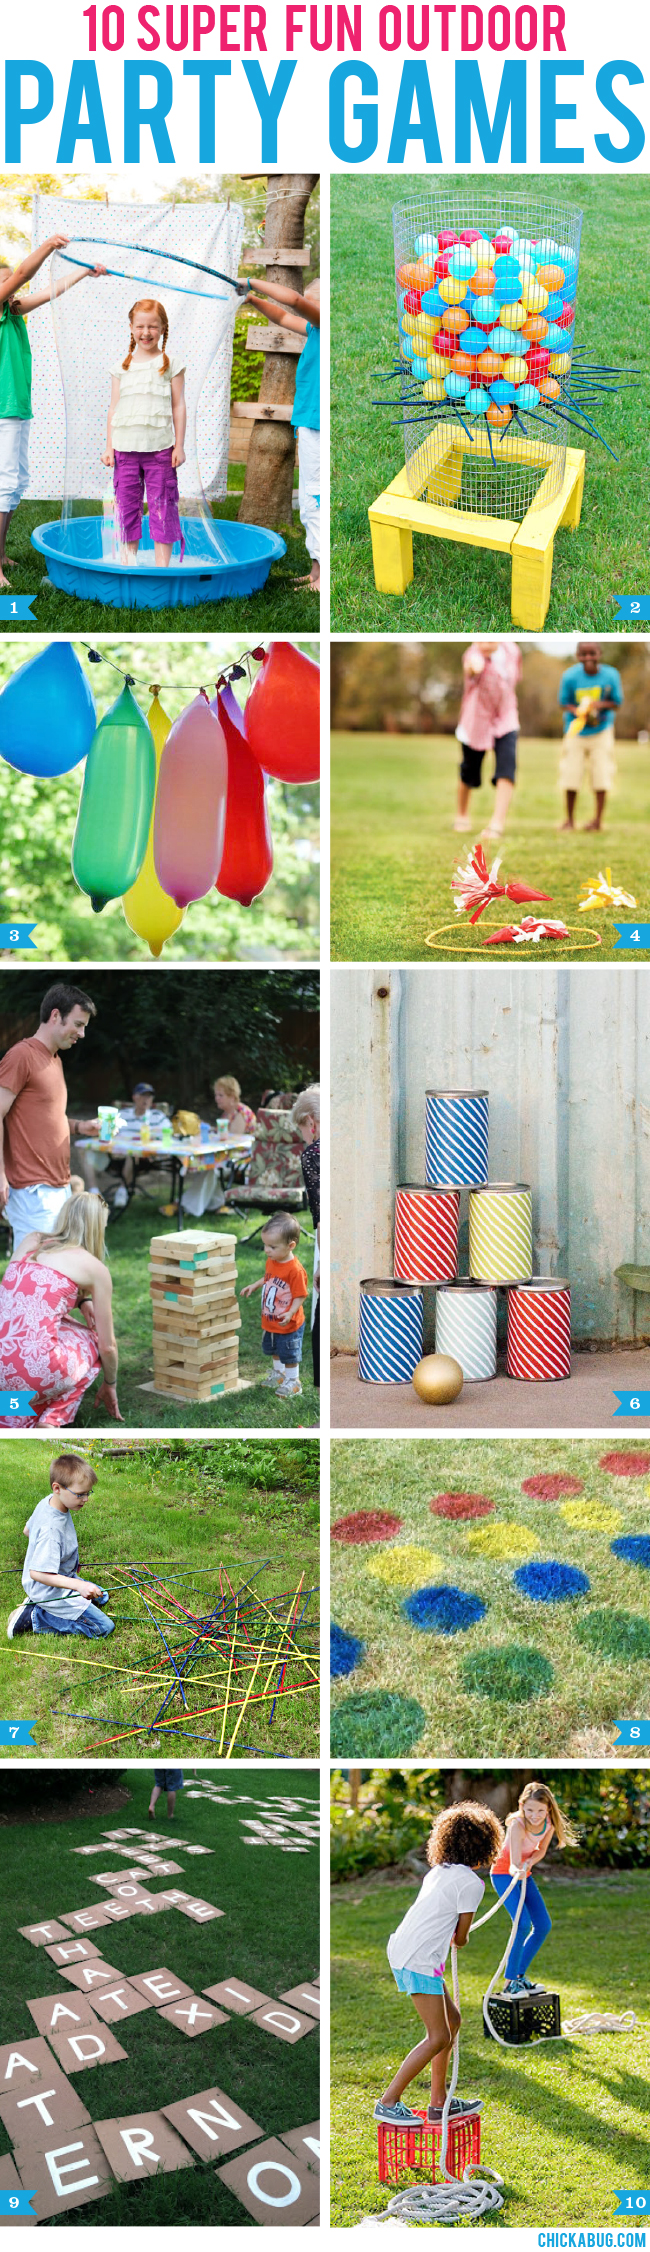 https://blog.chickabug.com/wp-content/uploads/2014/04/outdoor-party-games.jpg